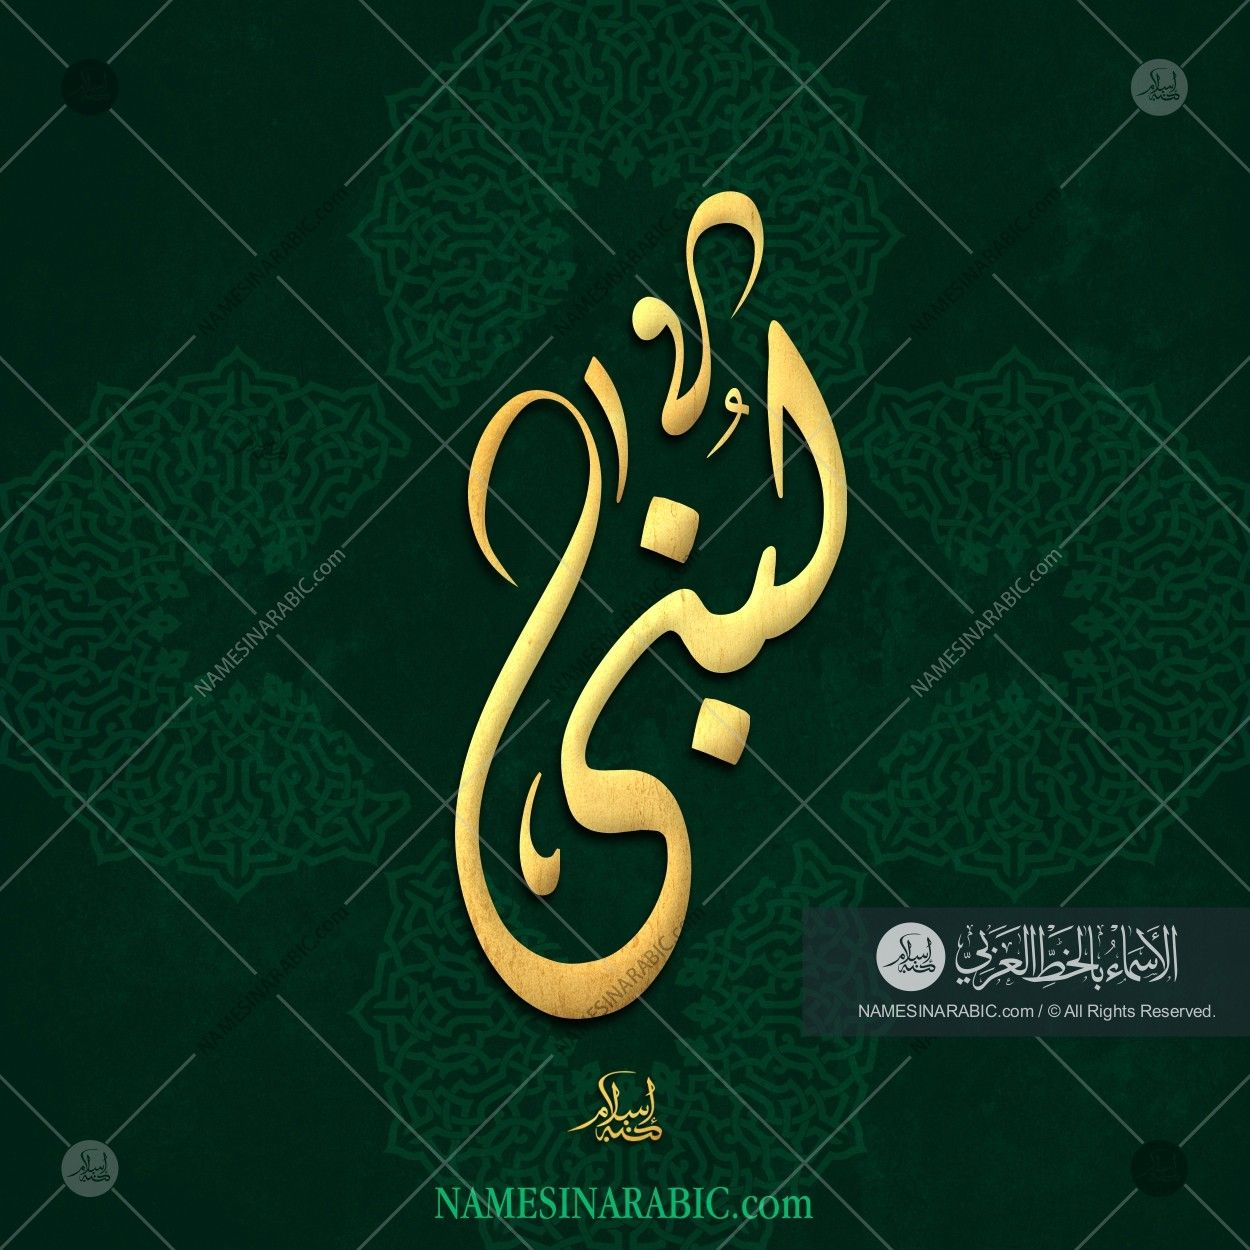 Lubna لبنى Names In Arabic Calligraphy Name 6012 Arabic Calligraphy Design Arabic Calligraphy Calligraphy